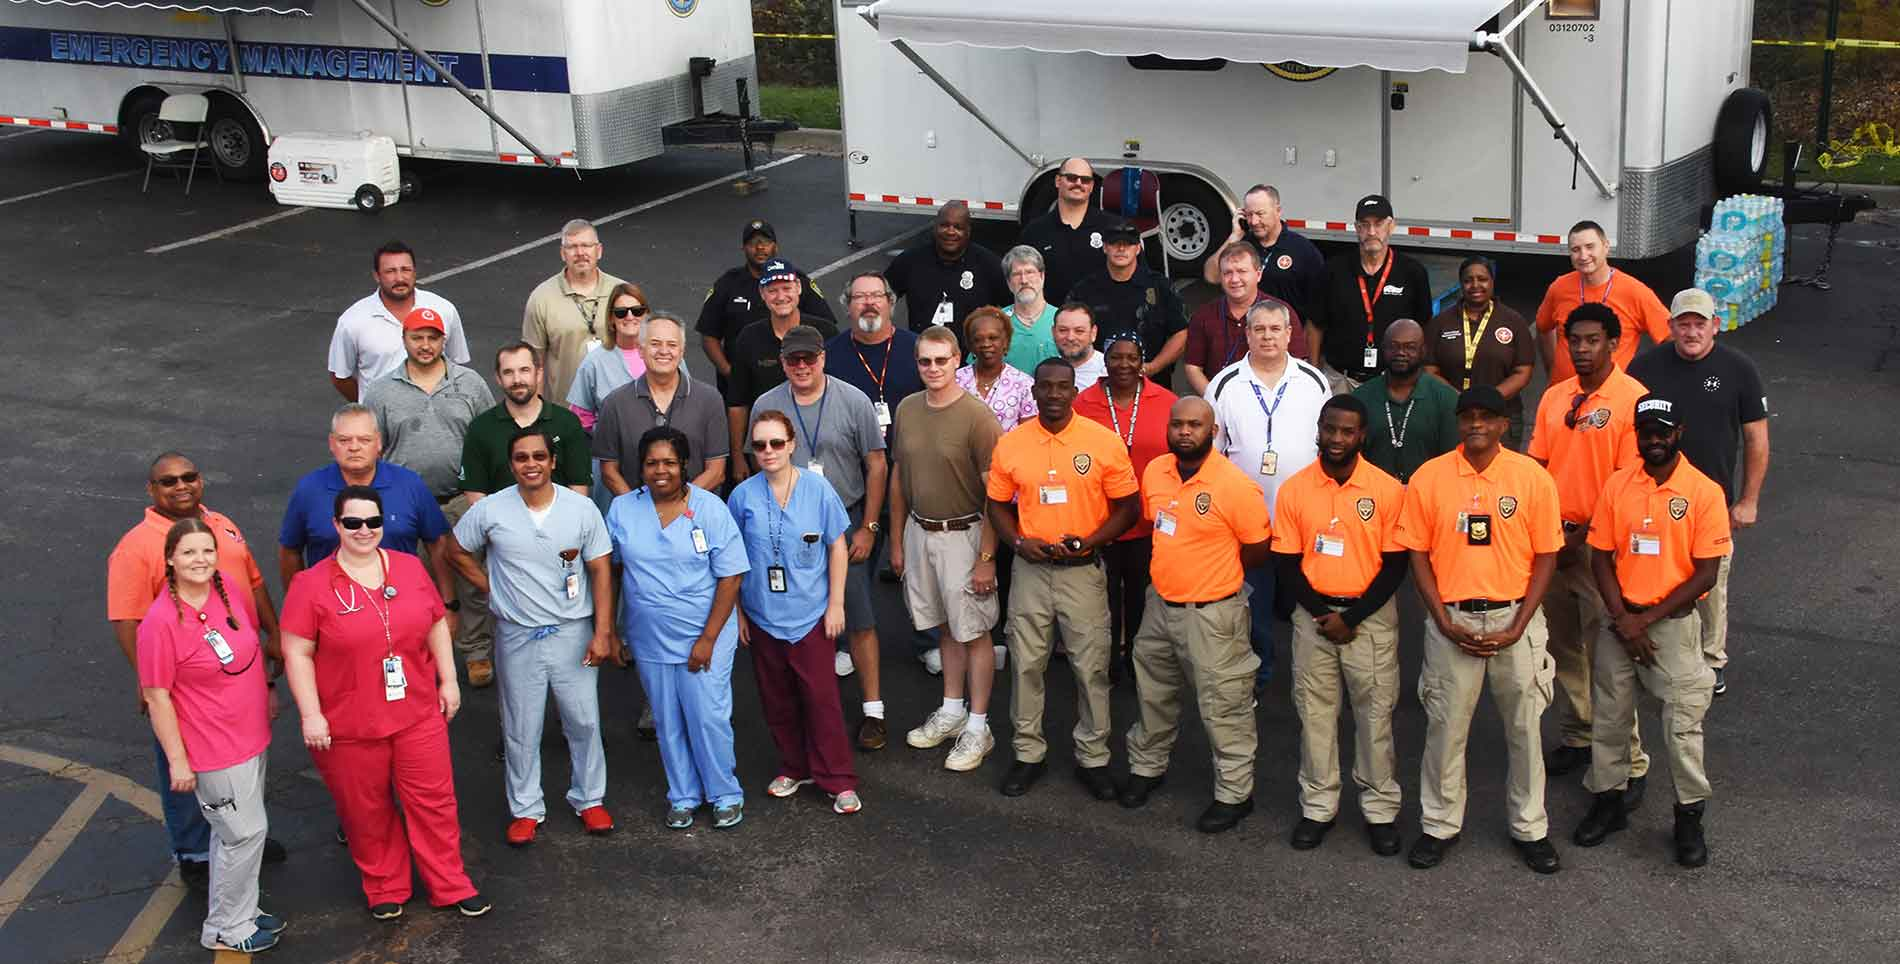 Aid to veterans after disasters: Software solution streamlines VA medical center volunteers